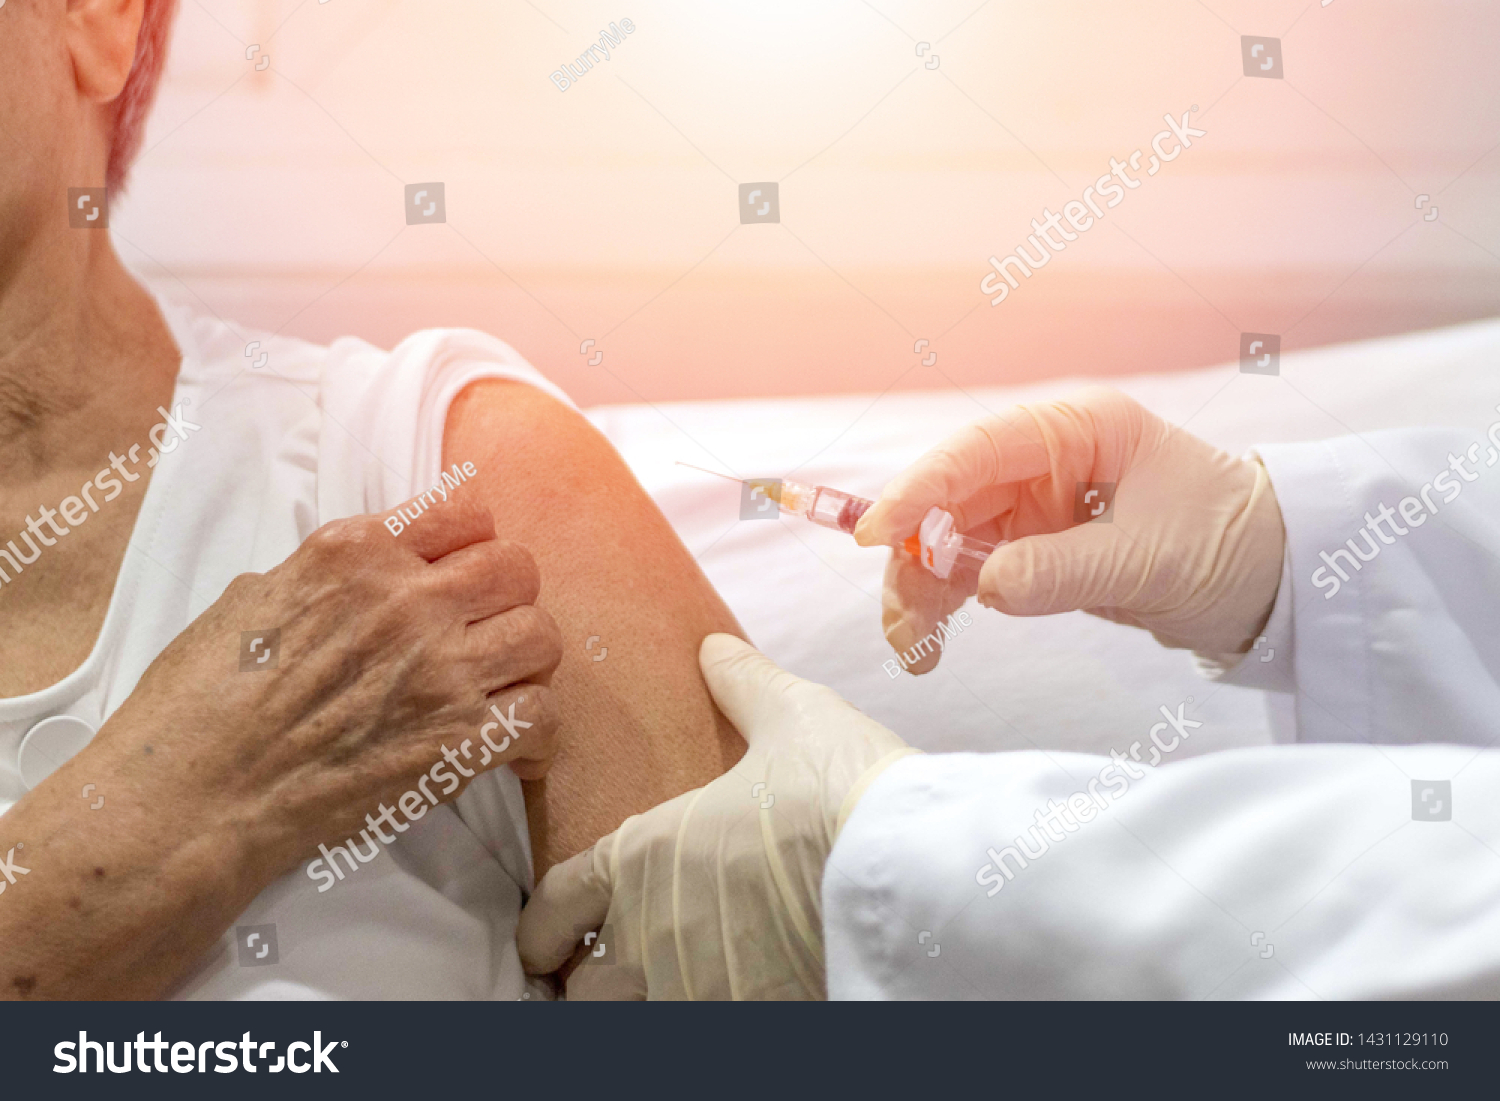 Senior vaccination concept. Elderly getting immune vaccine at arm for flu shot, pneumonia, and shingles(MMR) in hospital by nurse. Doctor giving an injection to older people patient in clinic. #1431129110